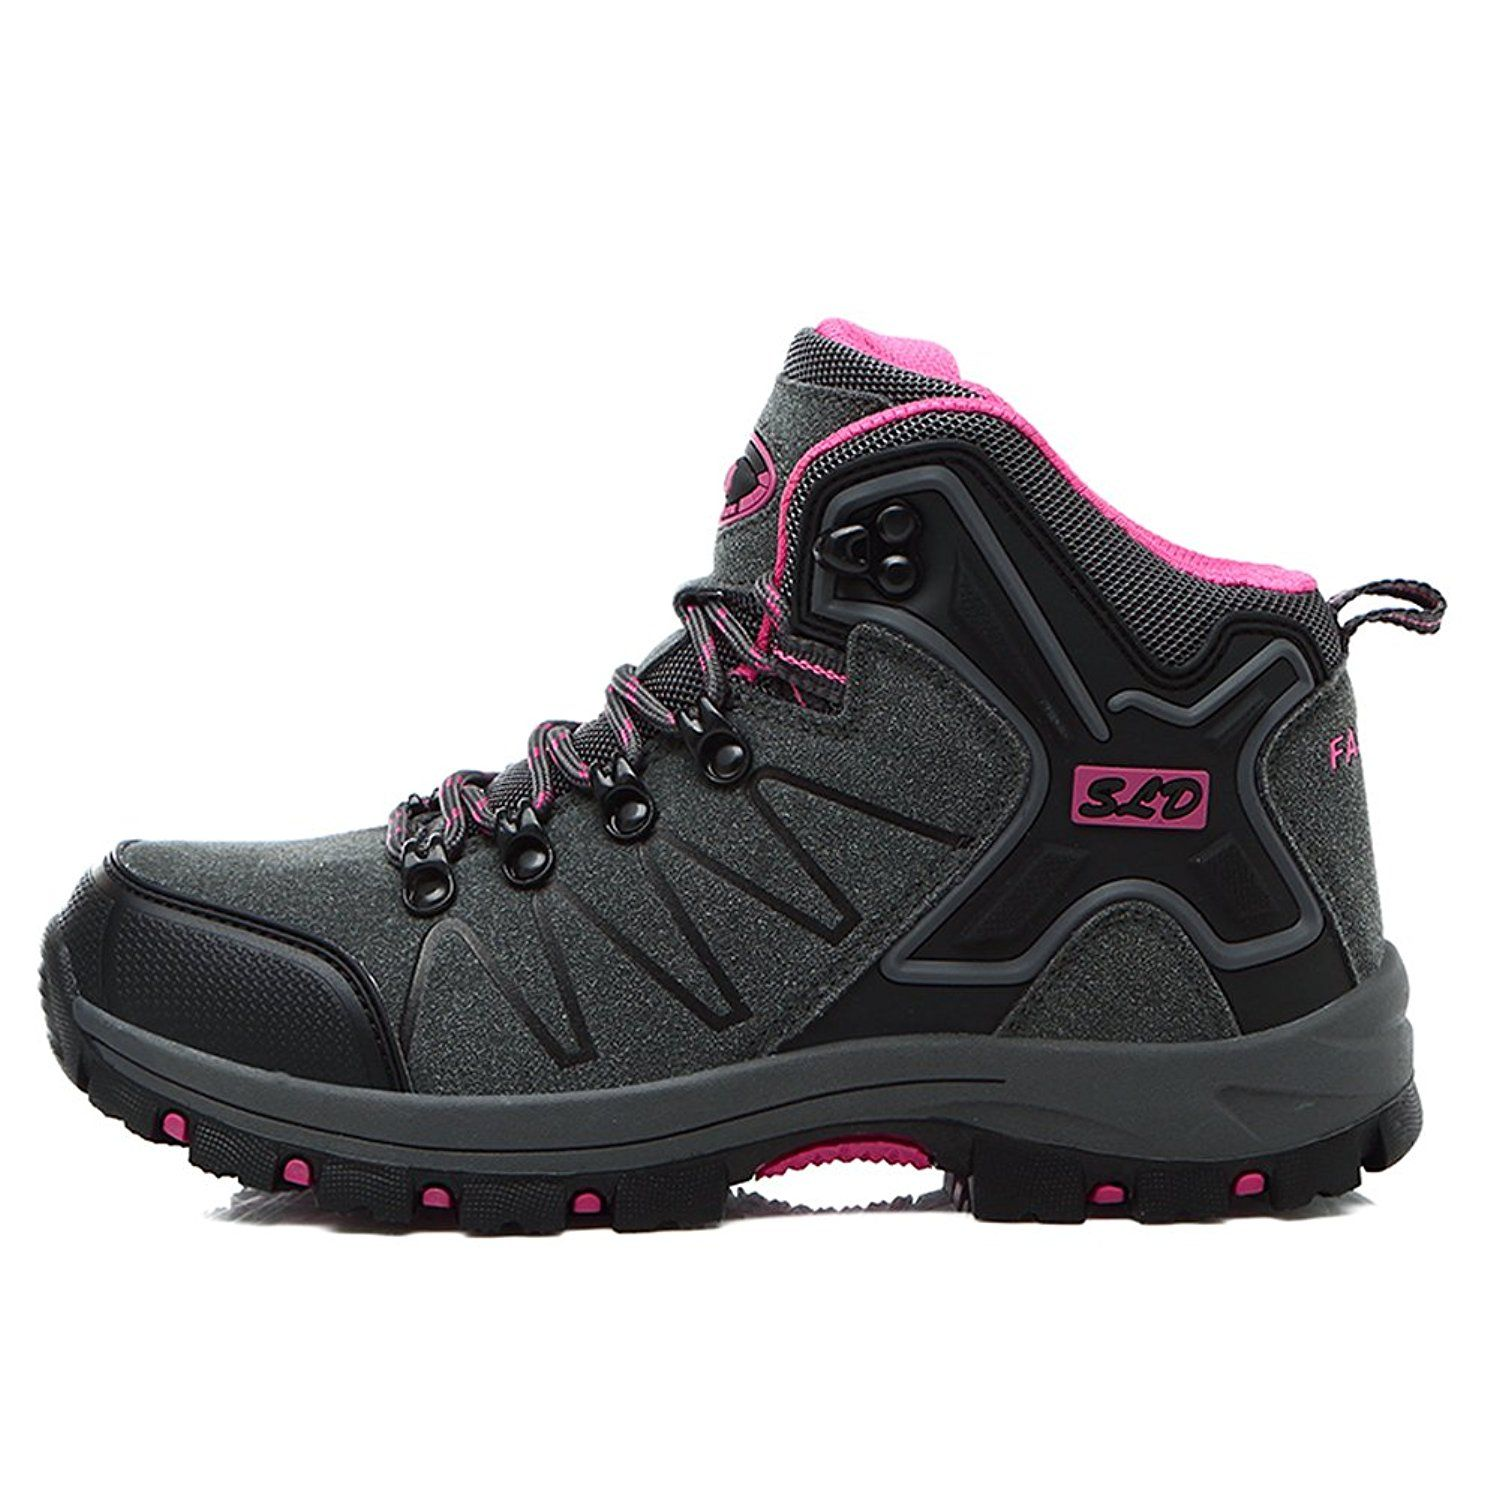 14f5bc4d551cc FEOZYZ Women's High Top Waterproof Hiking Boots * You can get more details  by clicking on the image. (This is an affiliate link) #HikingBoots